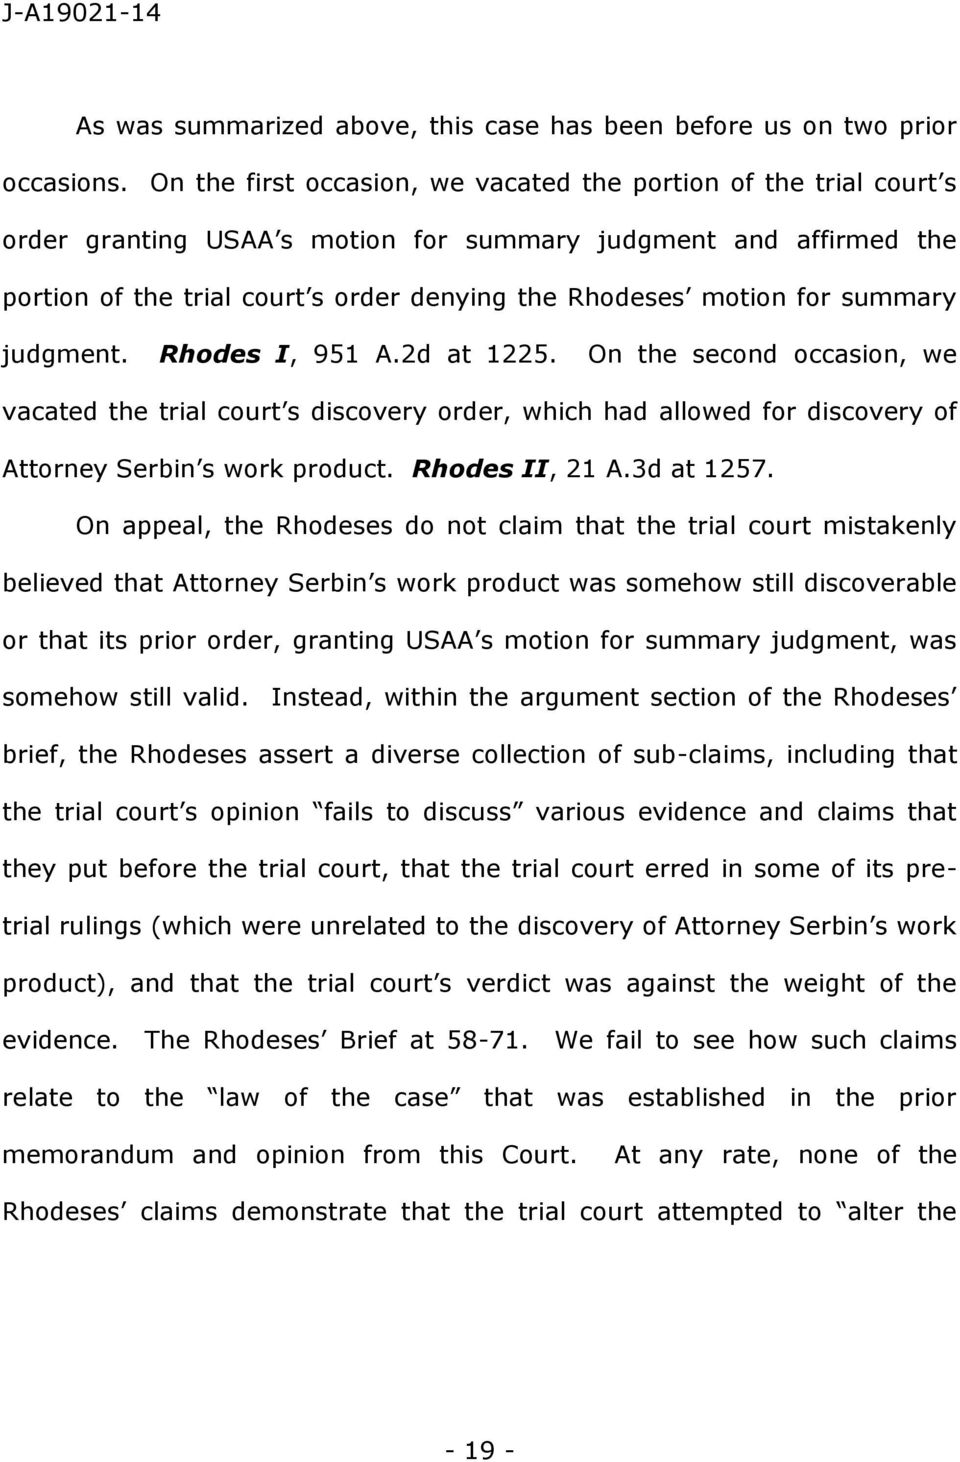 for summary judgment. Rhodes I, 951 A.2d at 1225. On the second occasion, we vacated the trial court s discovery order, which had allowed for discovery of Attorney Serbin s work product.